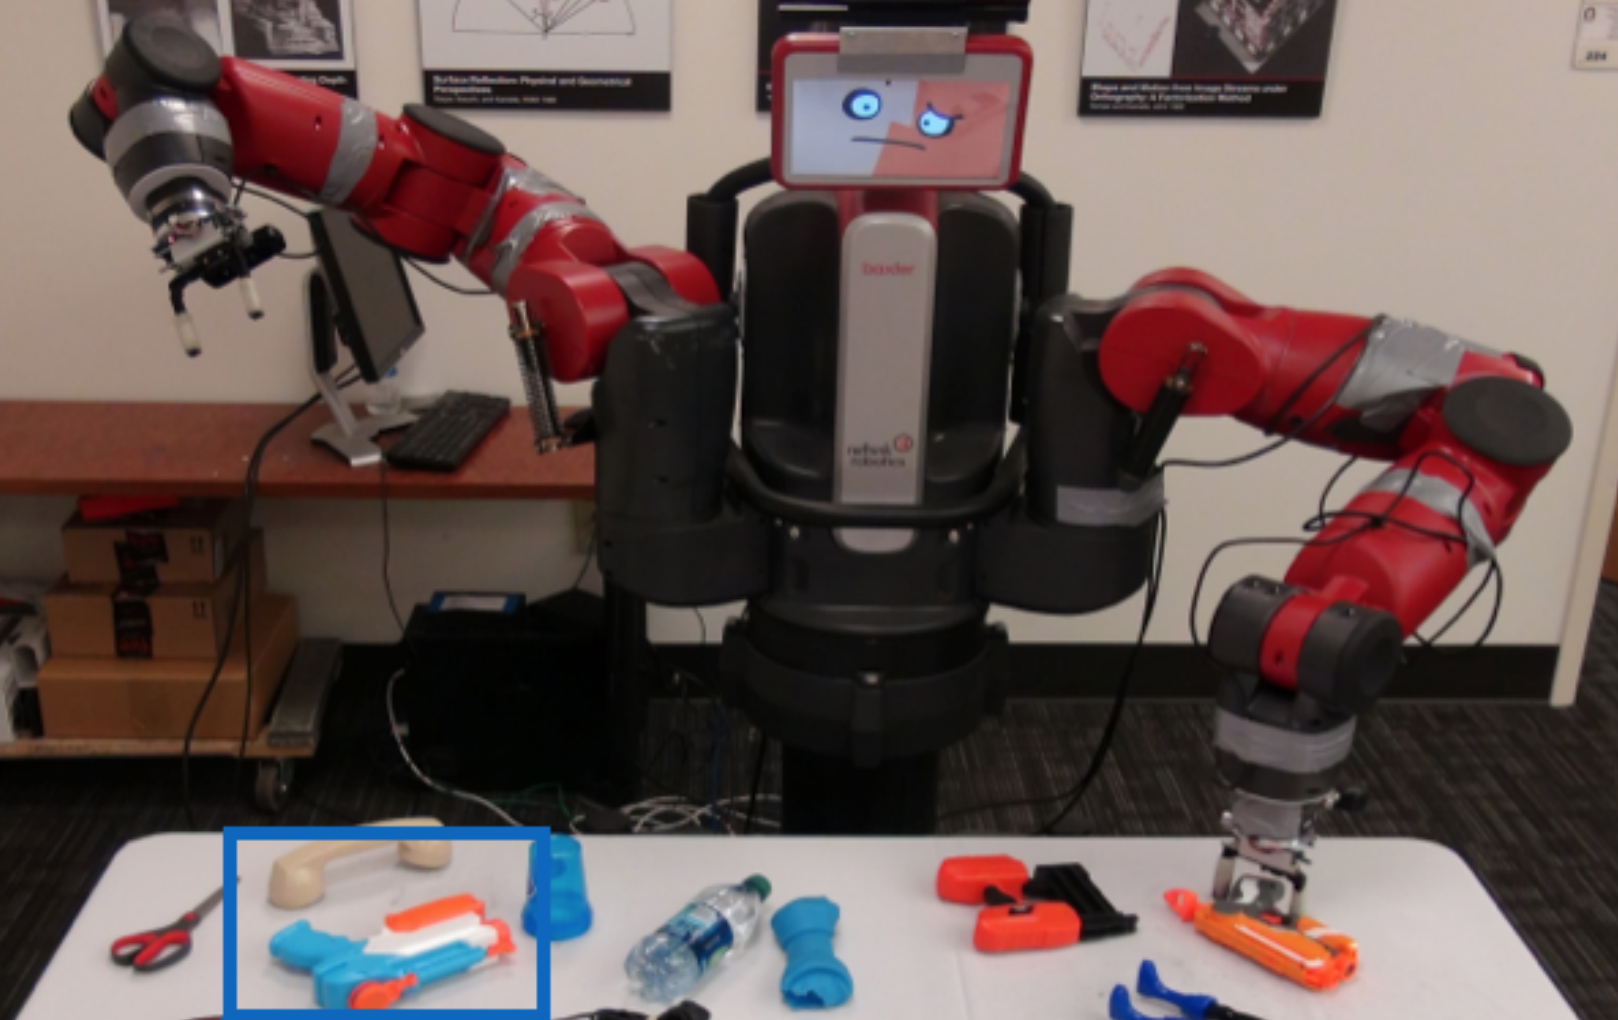 It Took This Robot 10 Days to Learn How to Grasp Objects From Scratch